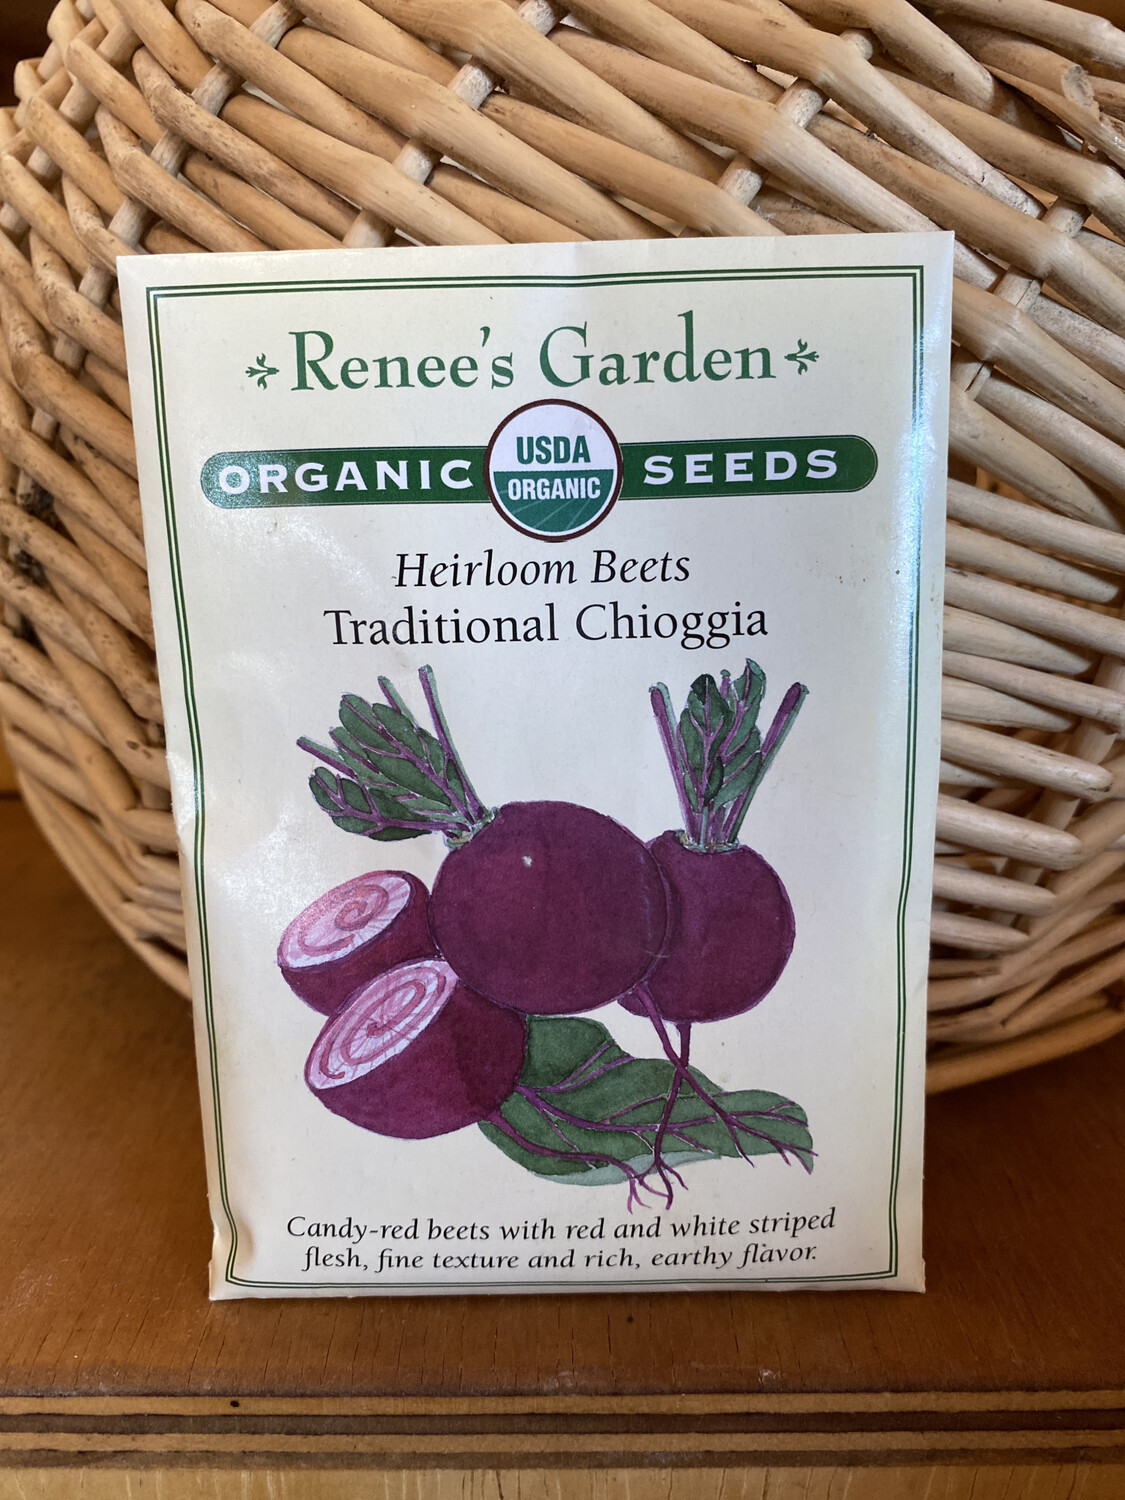 Heirloom Beets Traditional Chioggia | Renee's Garden Seed Pack | Past Year's Seeds | Reduced Price